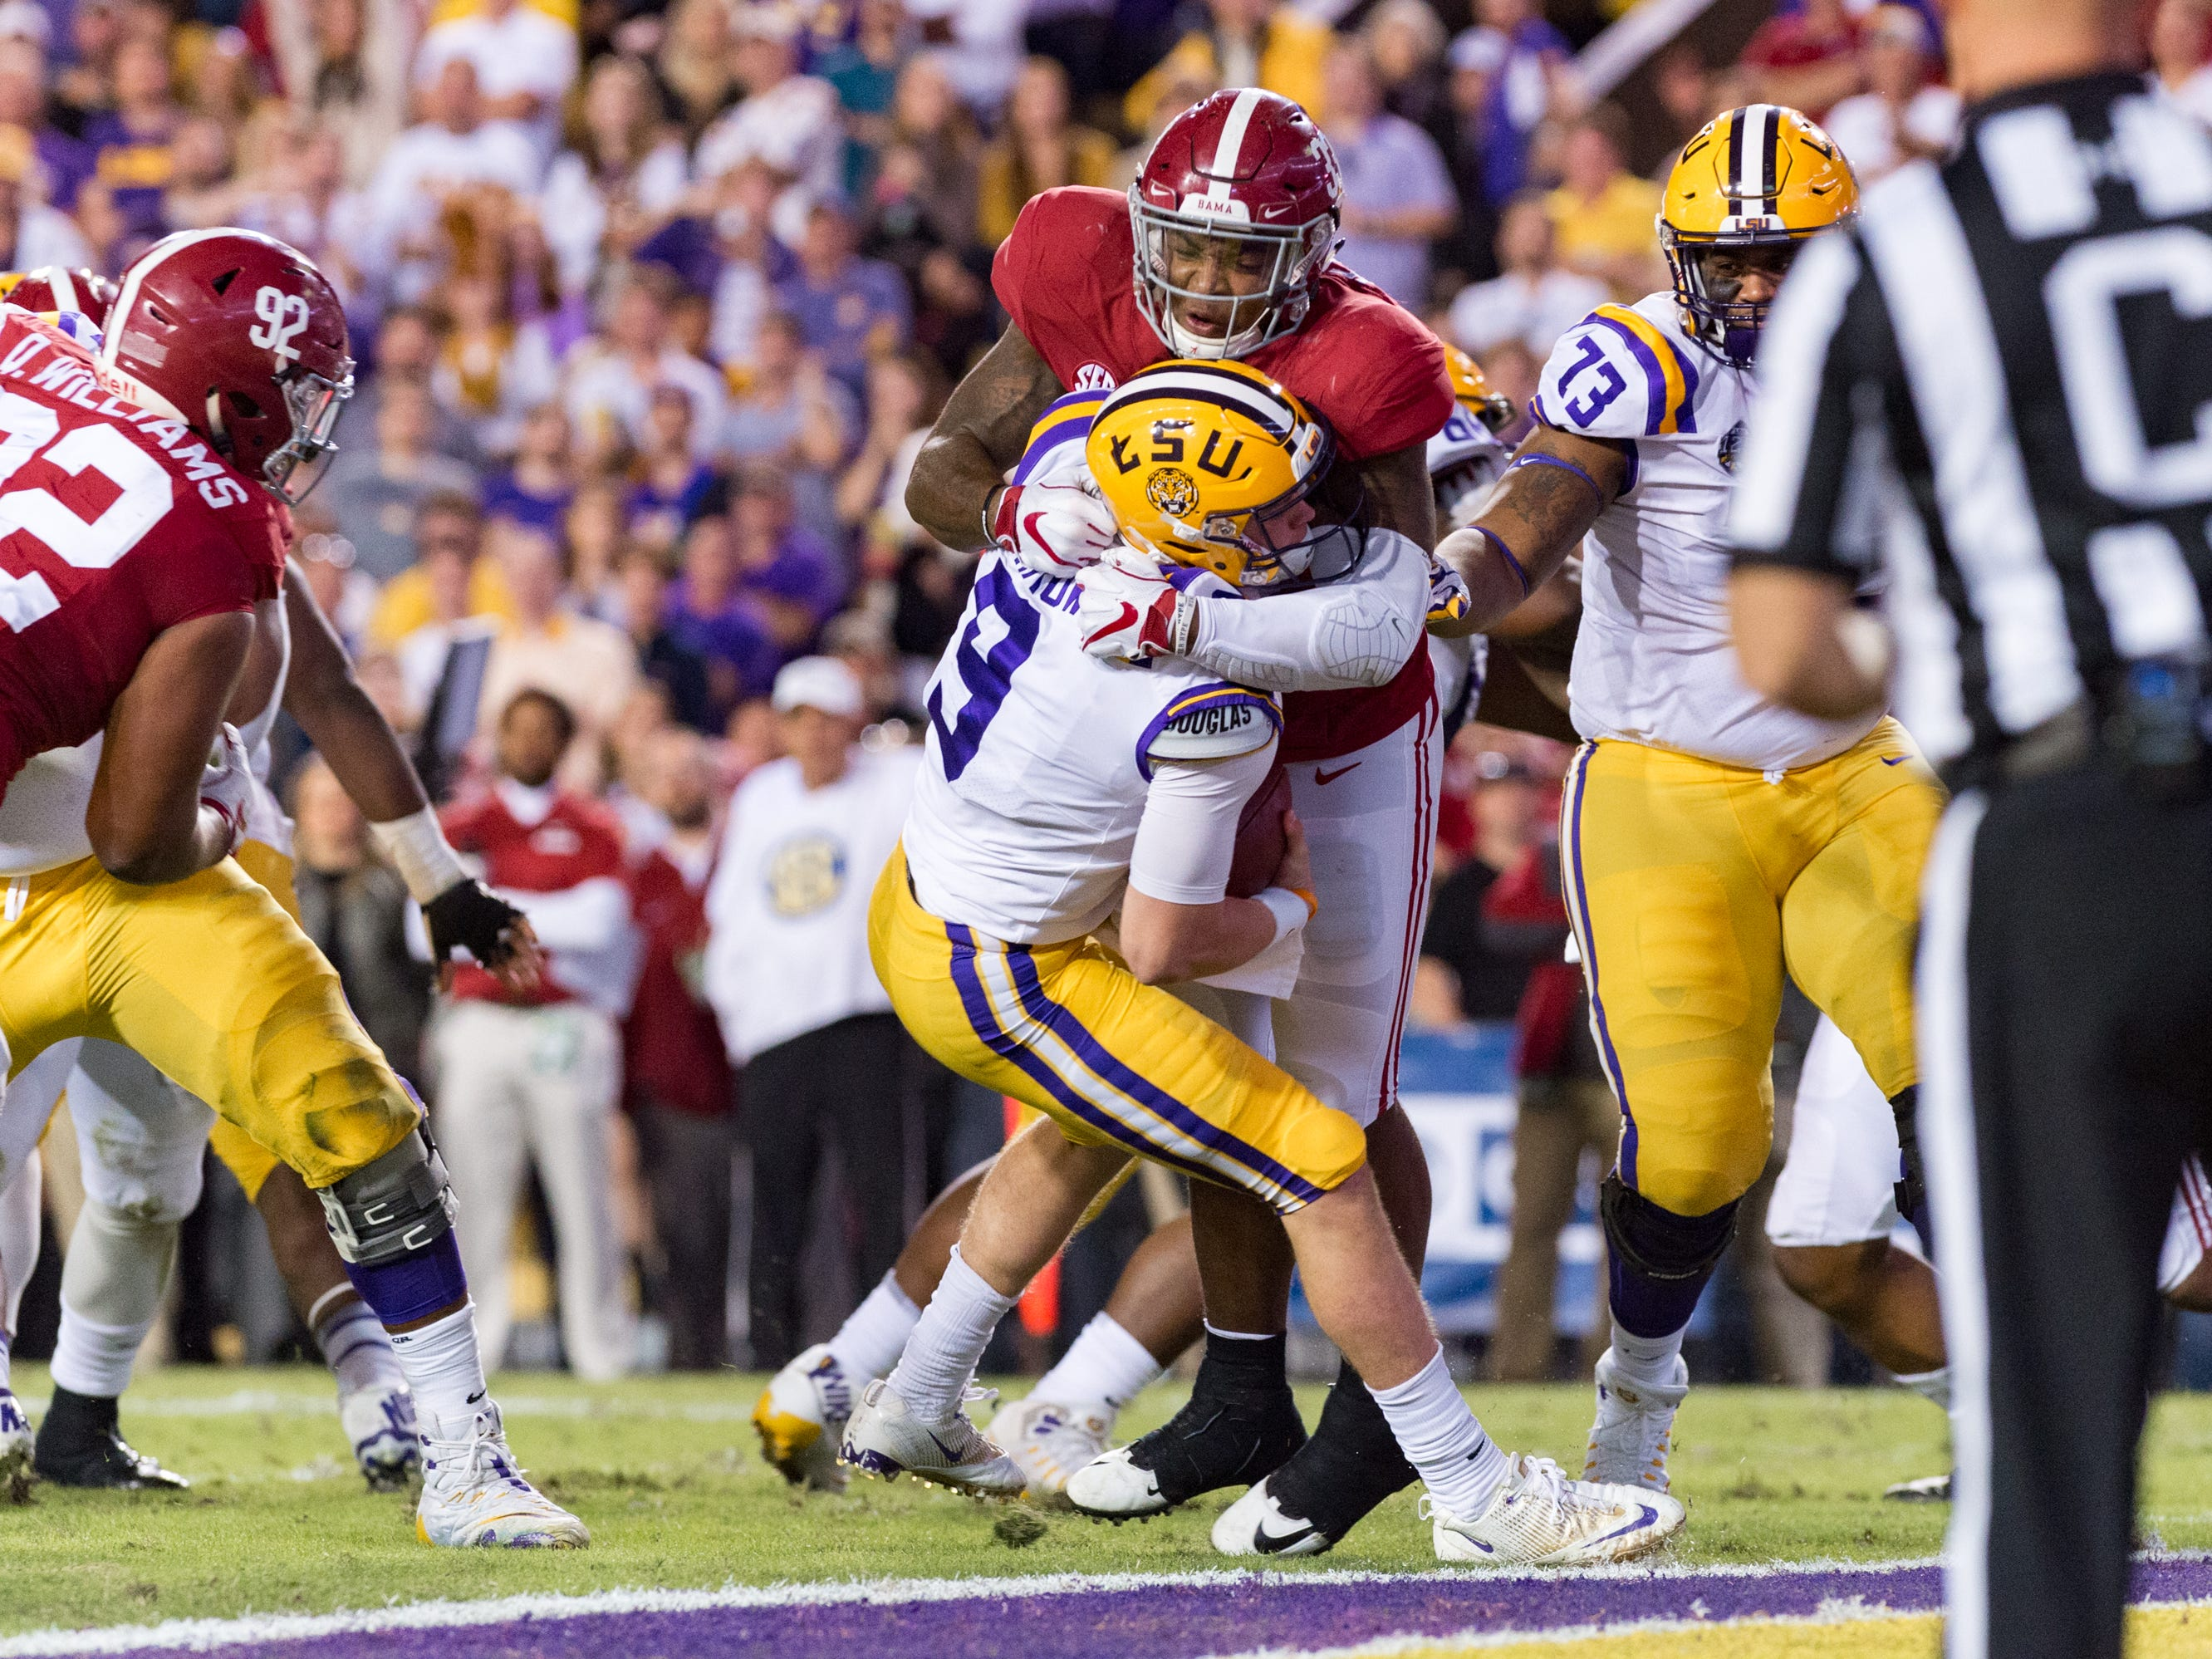 Tigers quarterback Joe Burrow is sacked by linebacker Anfernee Jennings as the No. 4-ranked LSU Tigers take on the No. 1  Alabama Crimson Tide in Tiger Stadium Saturday, Nov. 3, 2018.